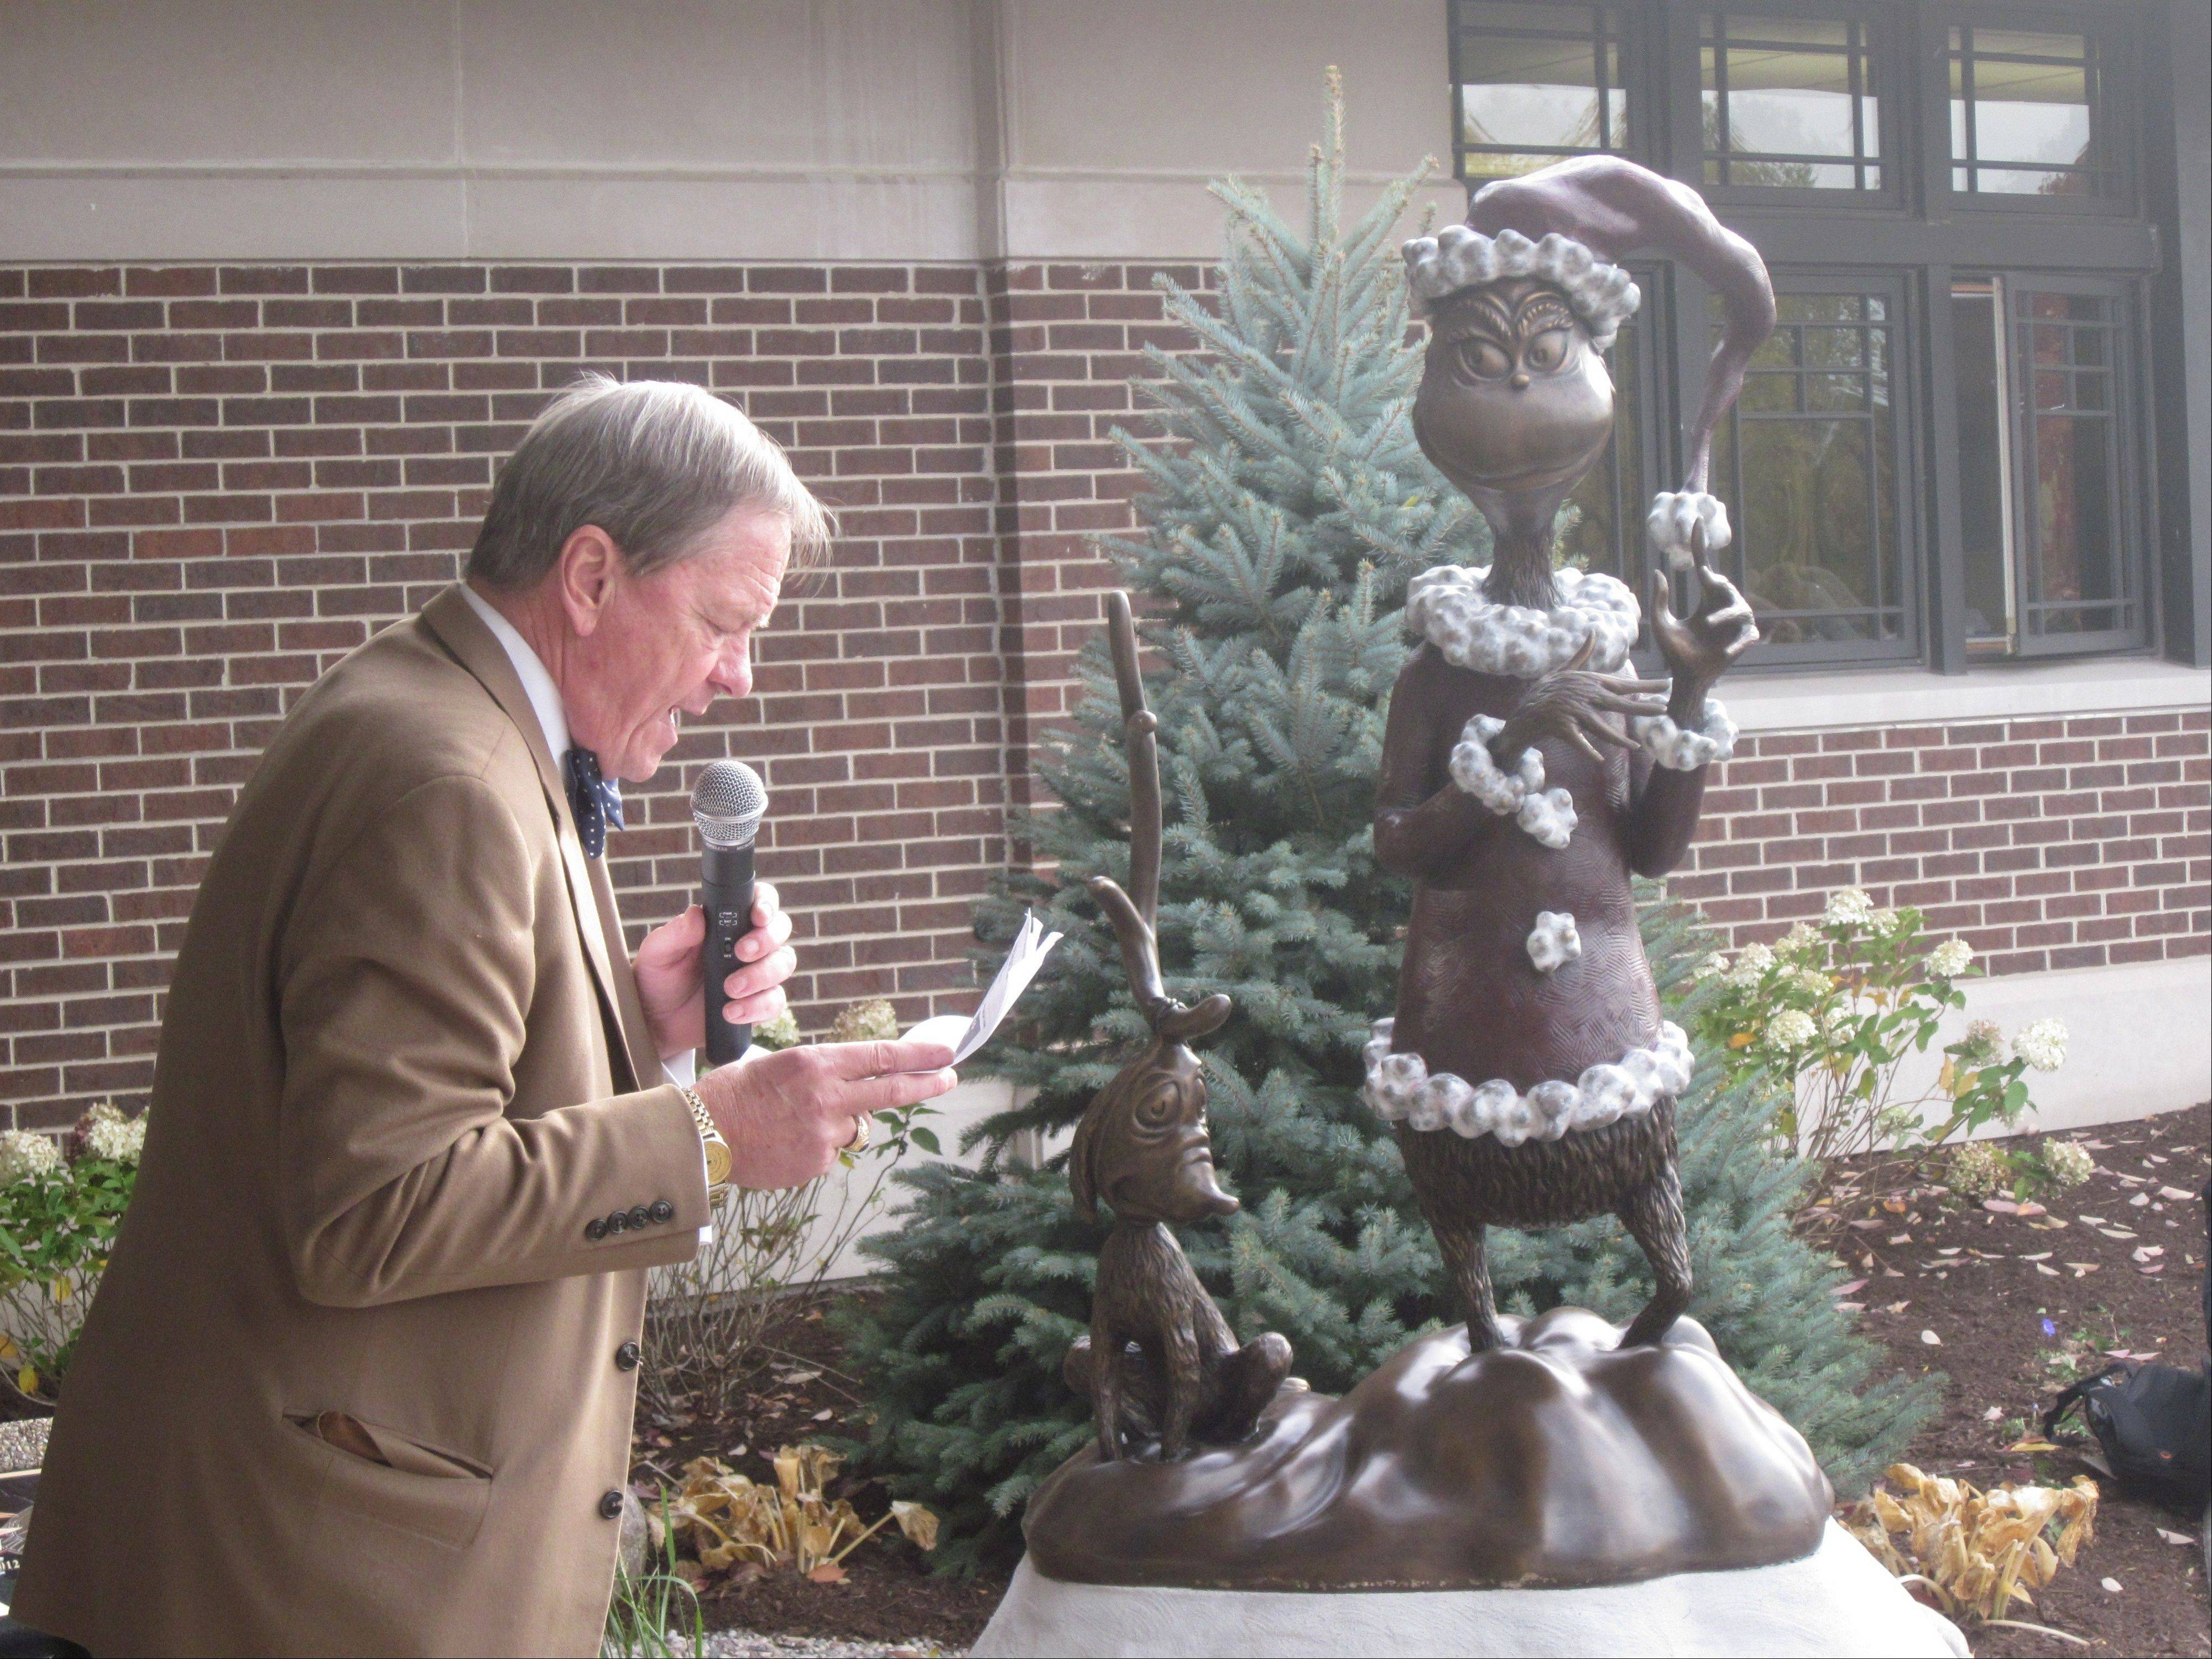 Century Walk Corp. President Brand Bobosky unveiled the new Grinch statue Tuesday at the Naper Boulevard Library.